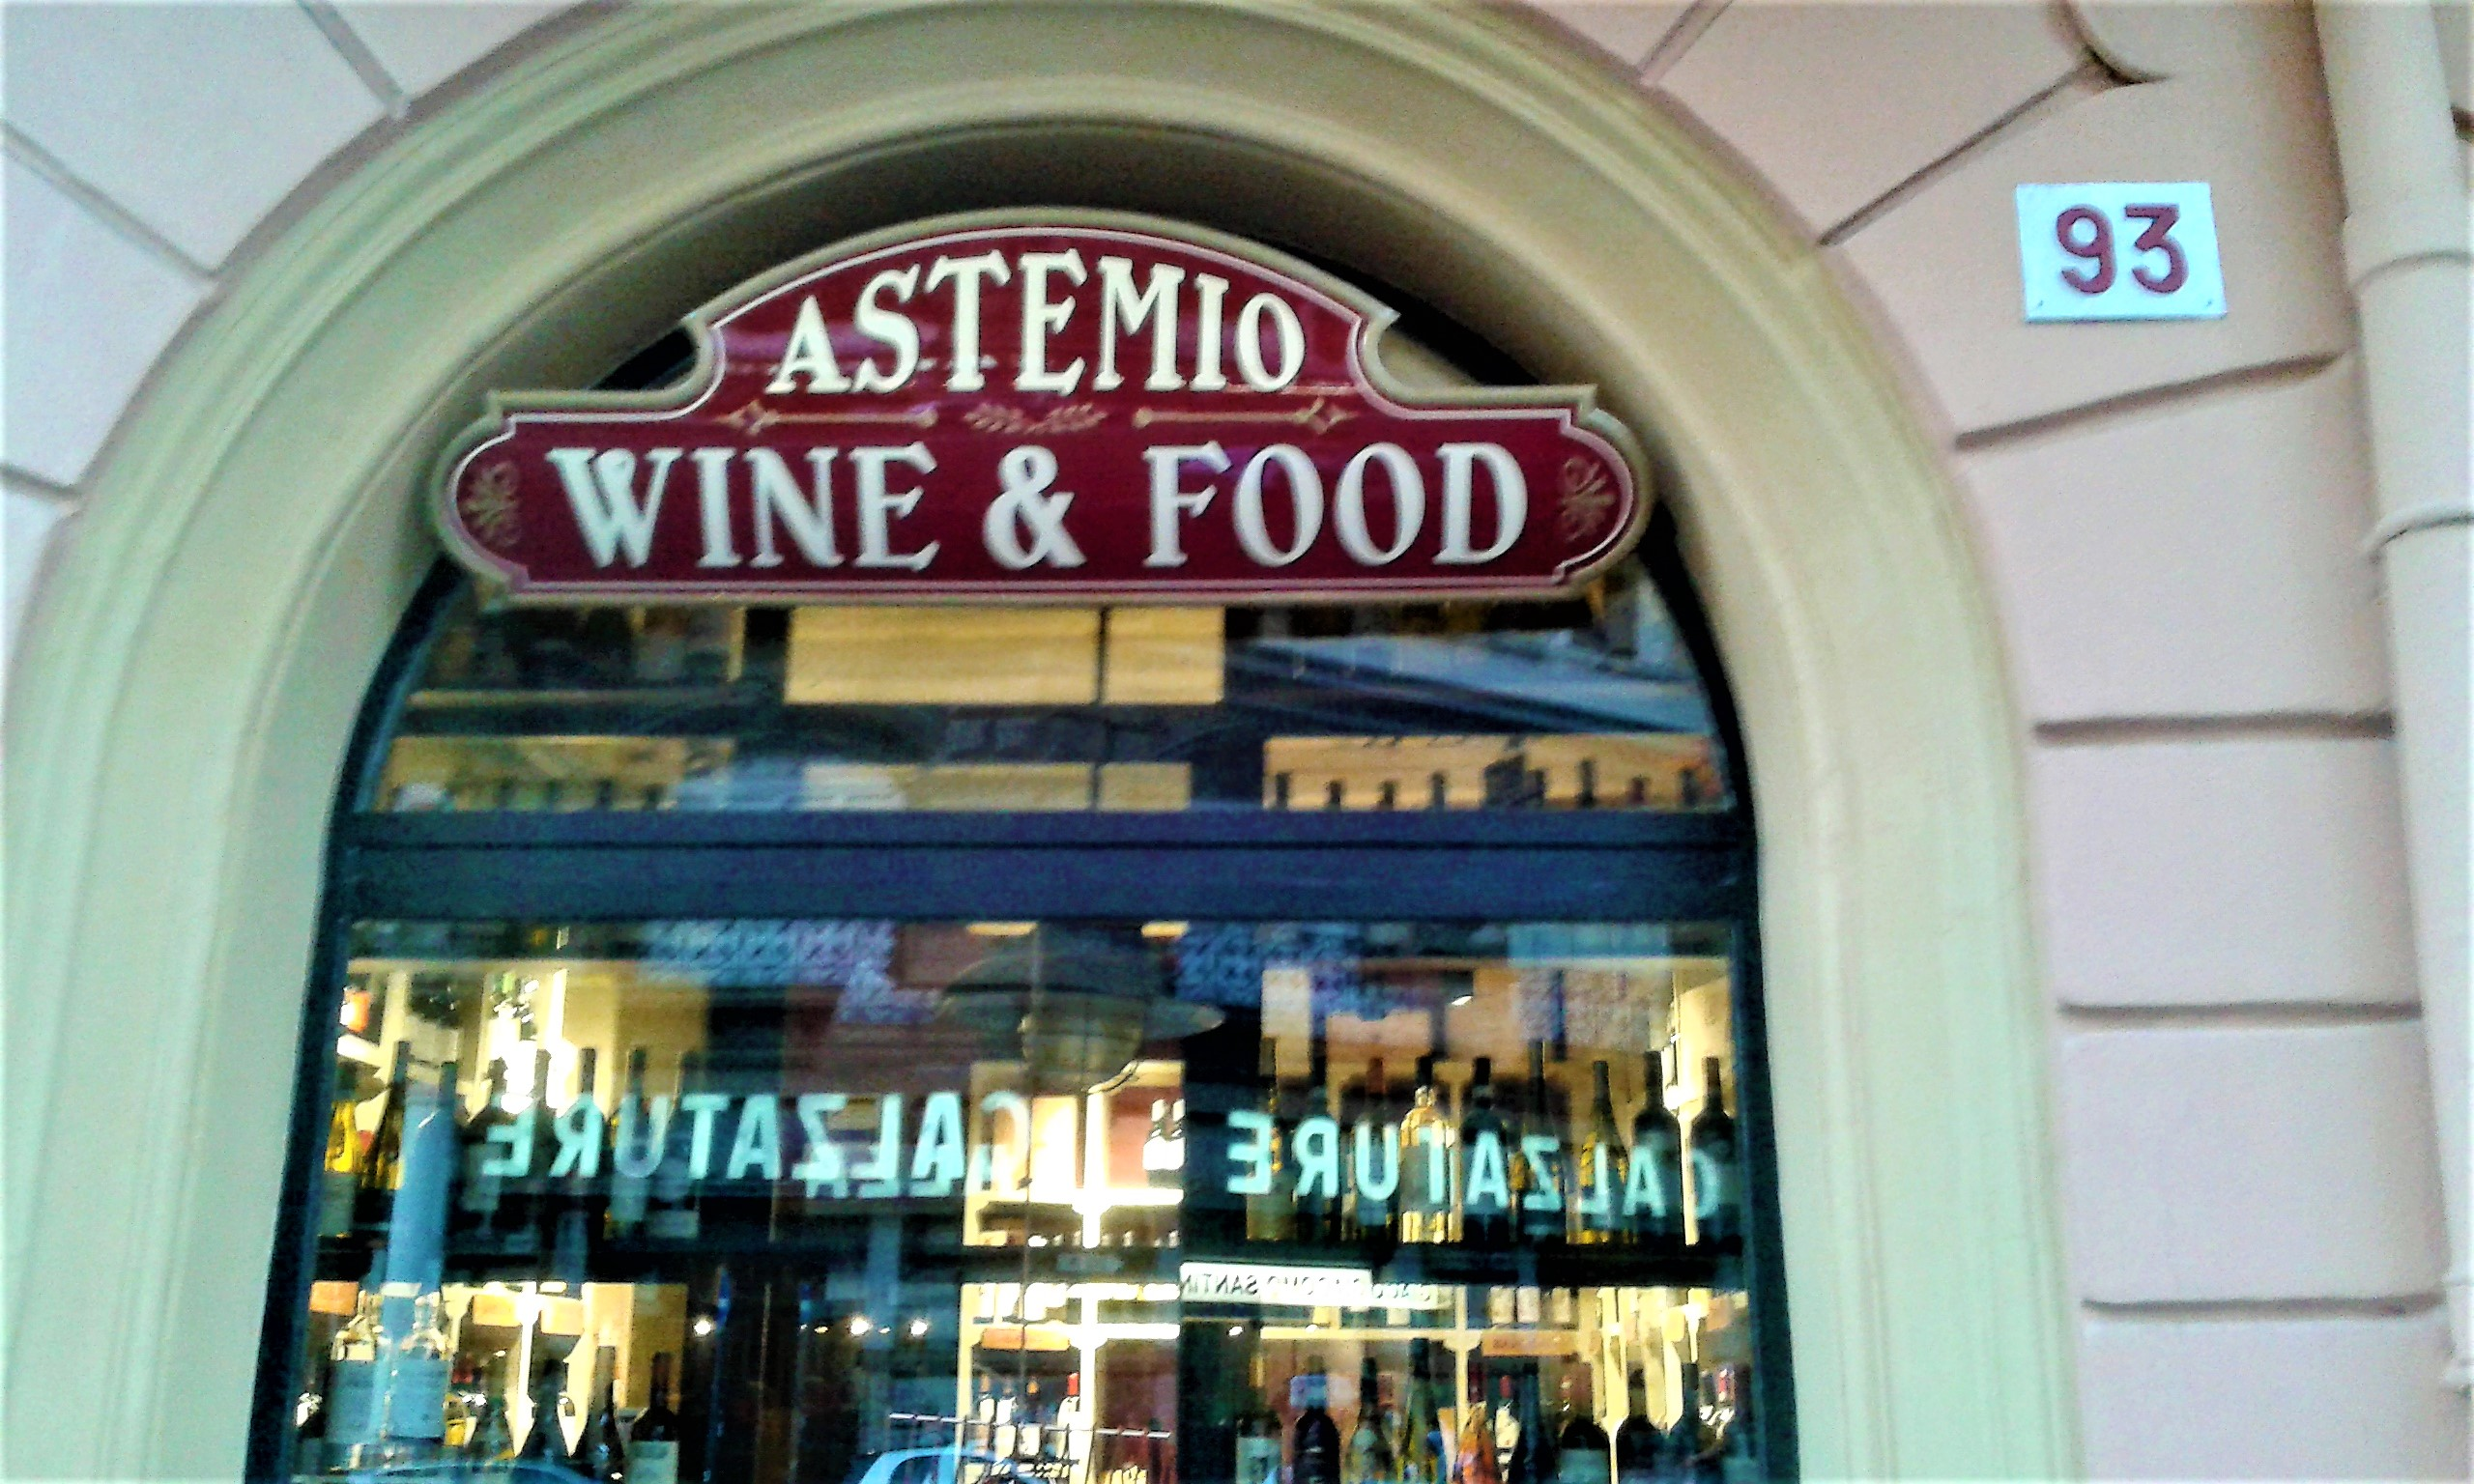 Rossano Turzo - Astemio Wine & Food